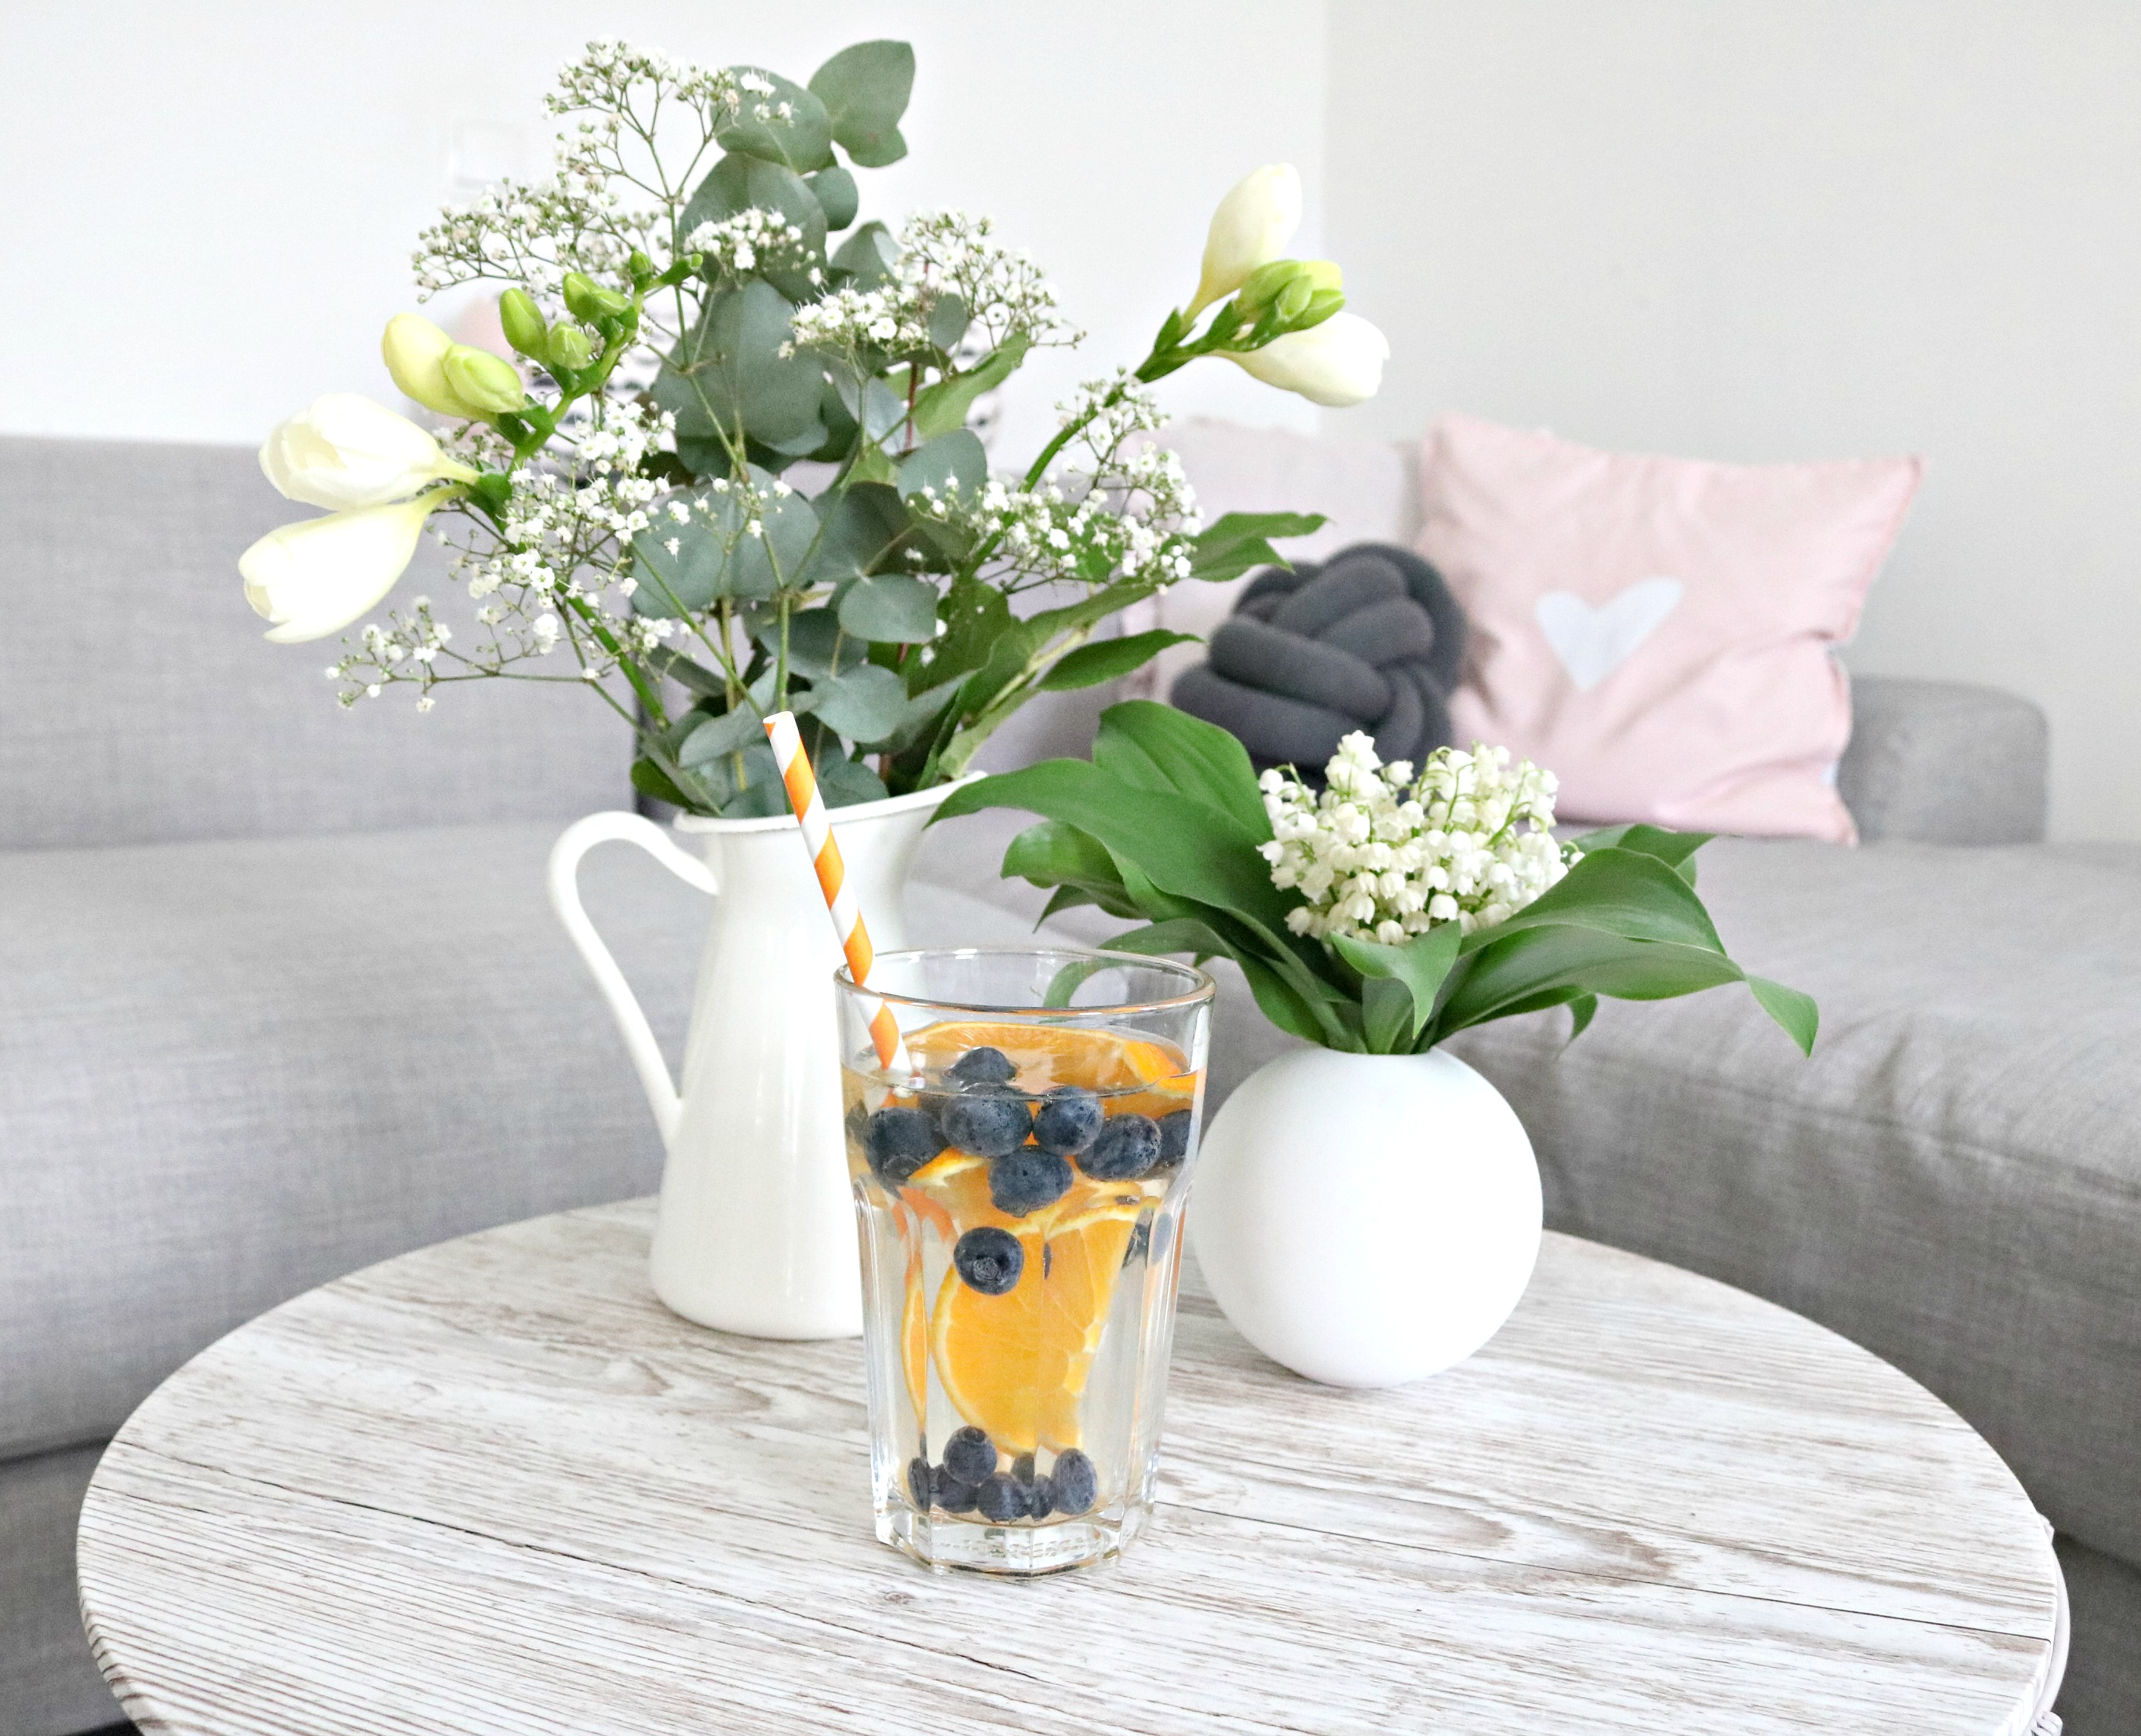 Infused_Water_Orange_Blaubeere